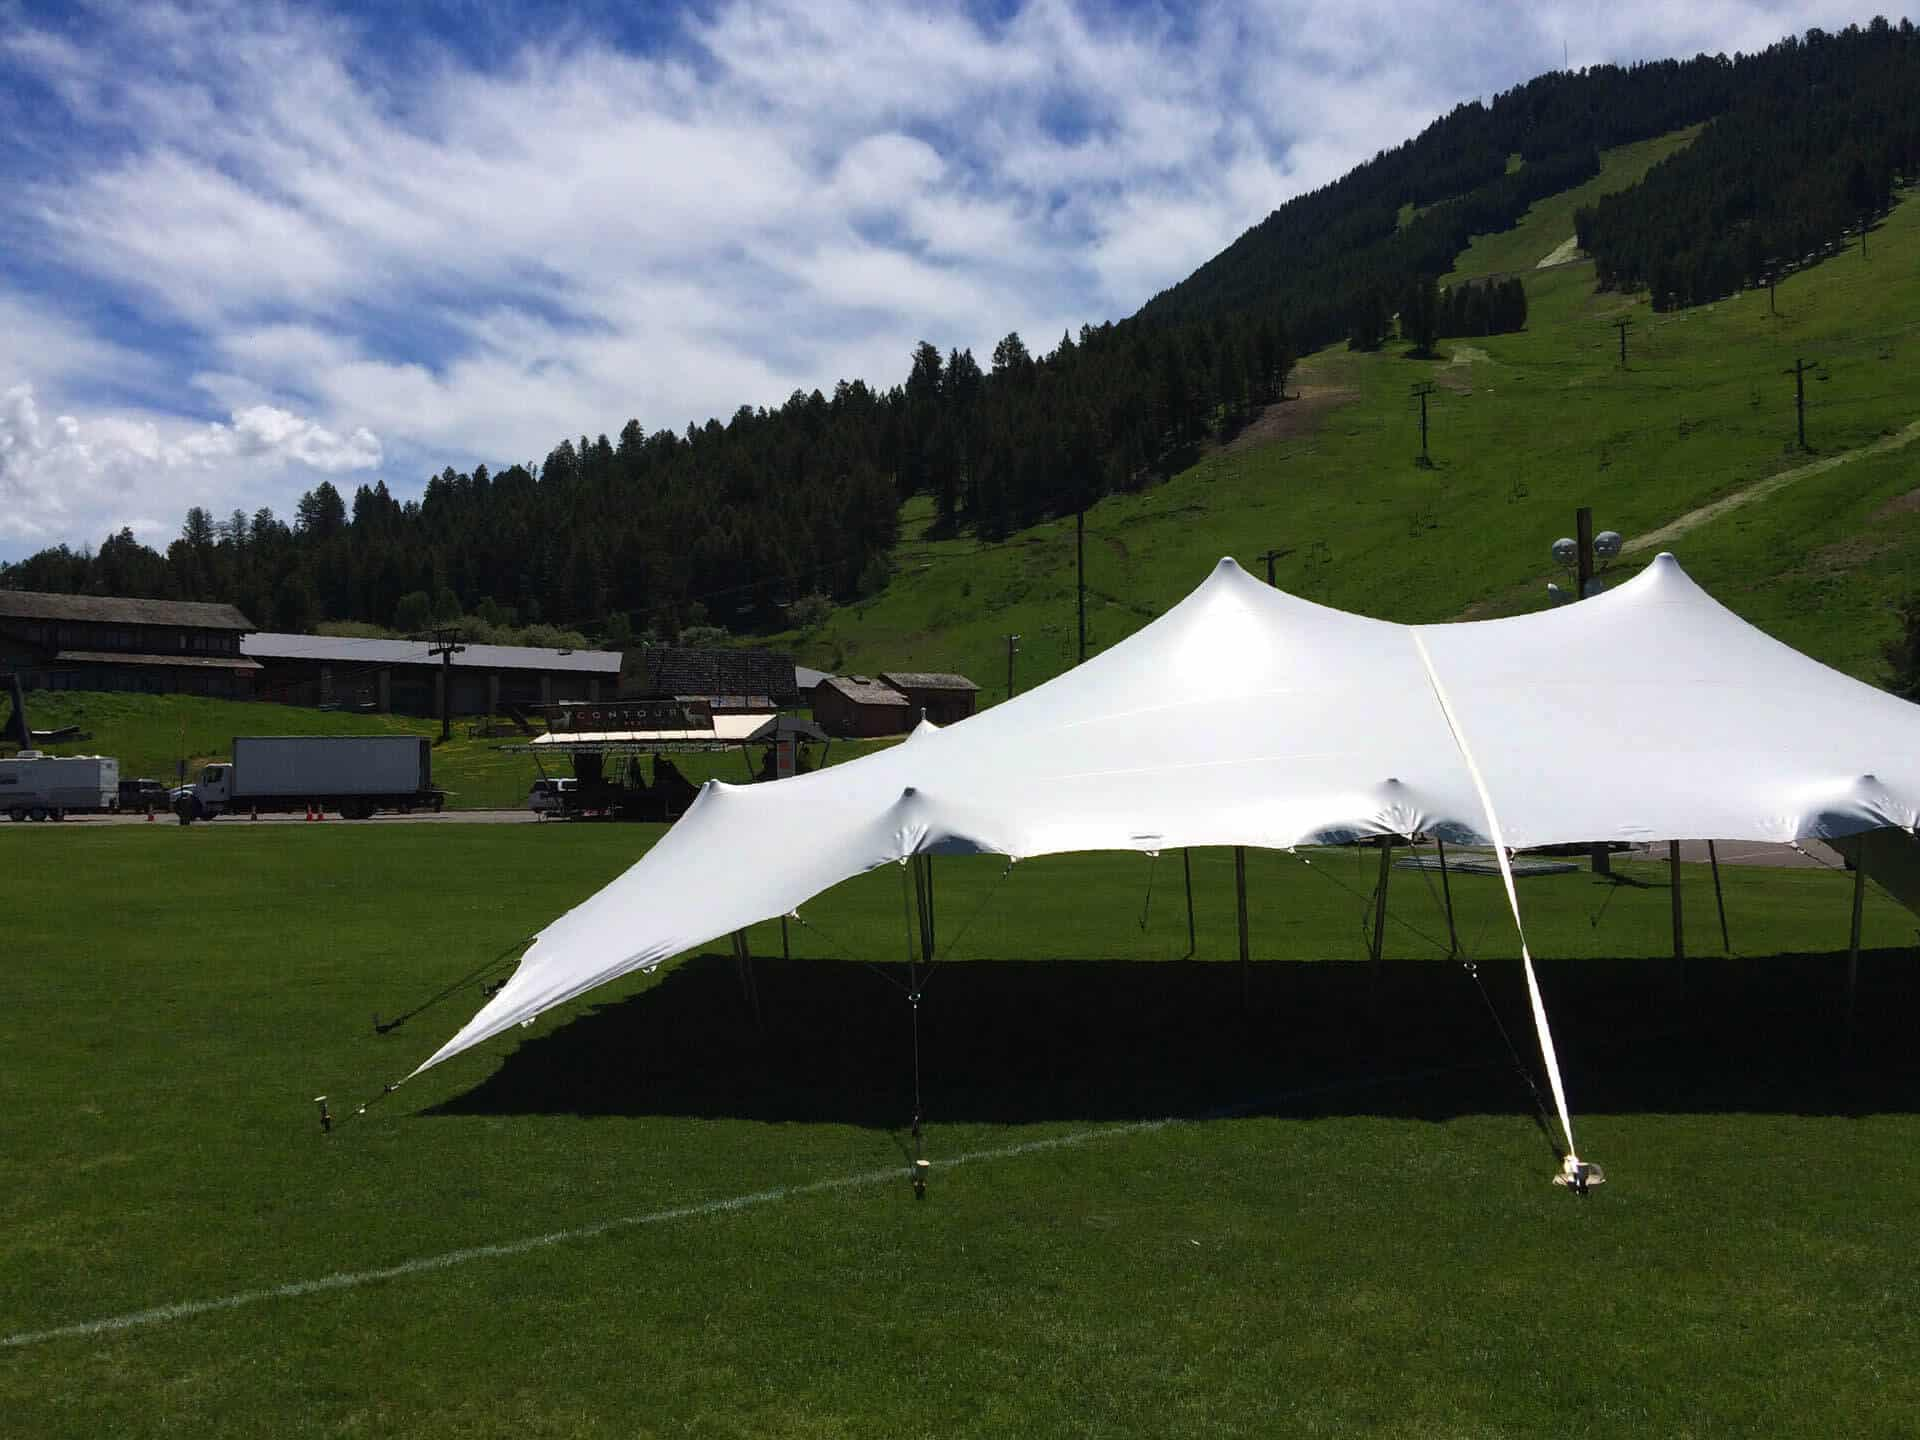 Spanish u2013 Leer en español & Stretch-Tent-Event-Snow-King-Resort-006 Peak Stretch Tents ...